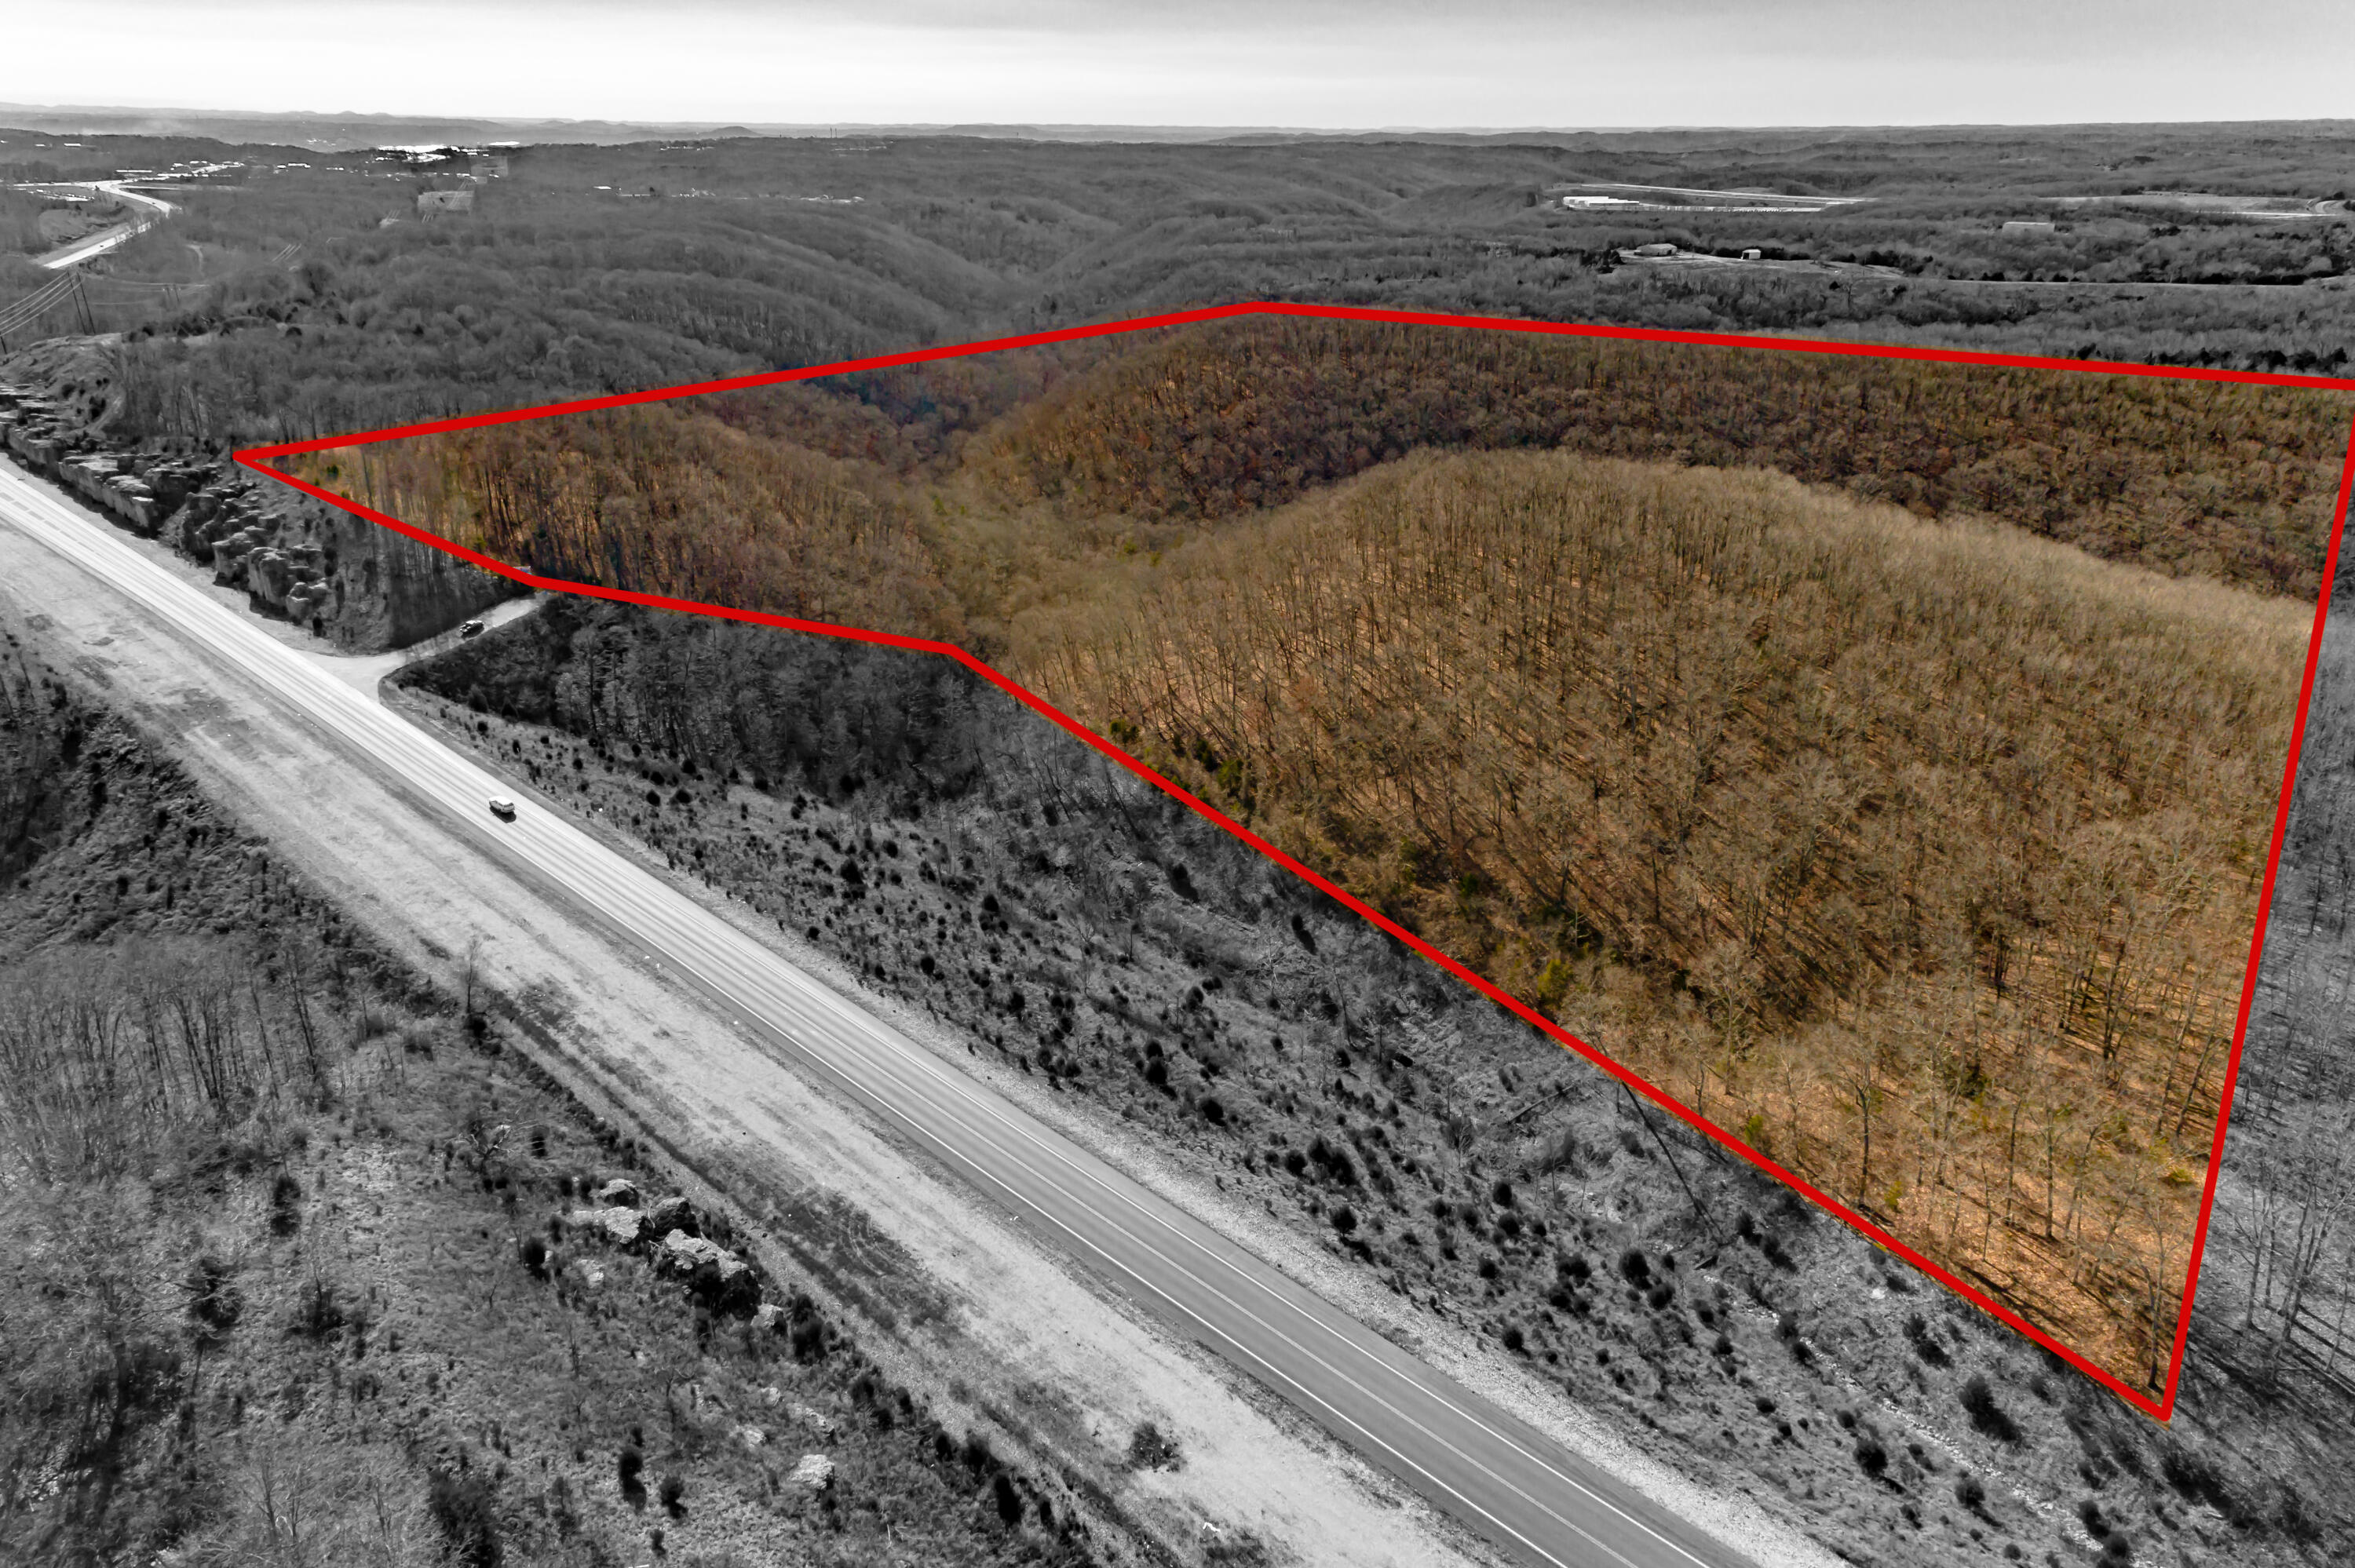 18701 State Highway 13, Branson West, MO 65737 Property Photo